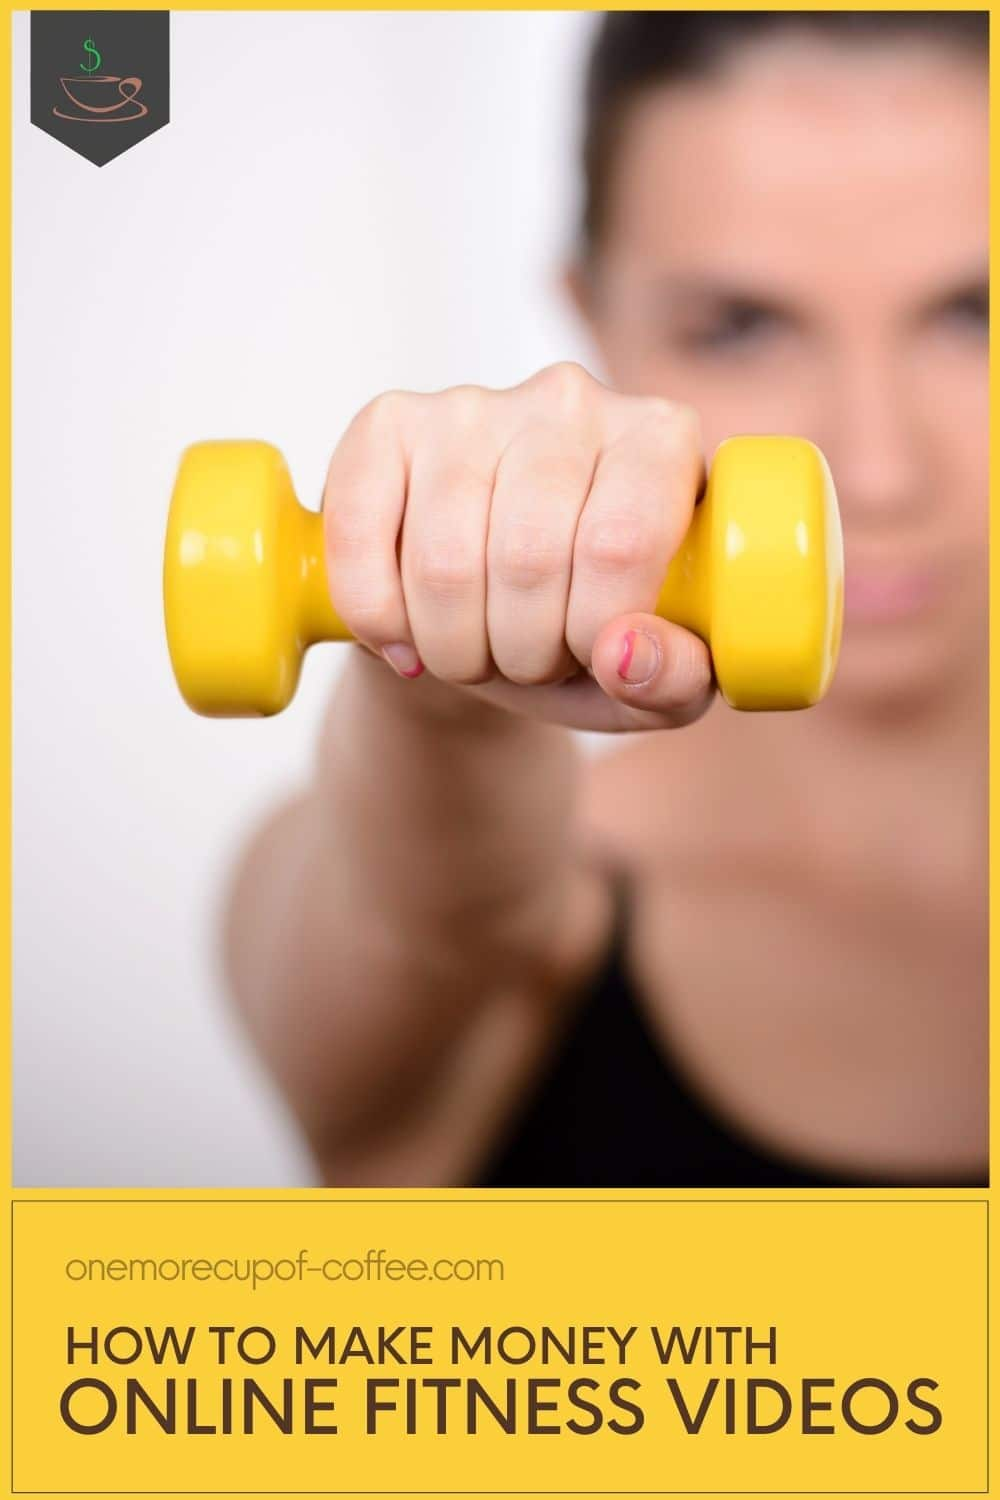 closeup image of a small yellow dumbbell held toward the camera by a woman in black workout top, with text at the bottom in yellow background